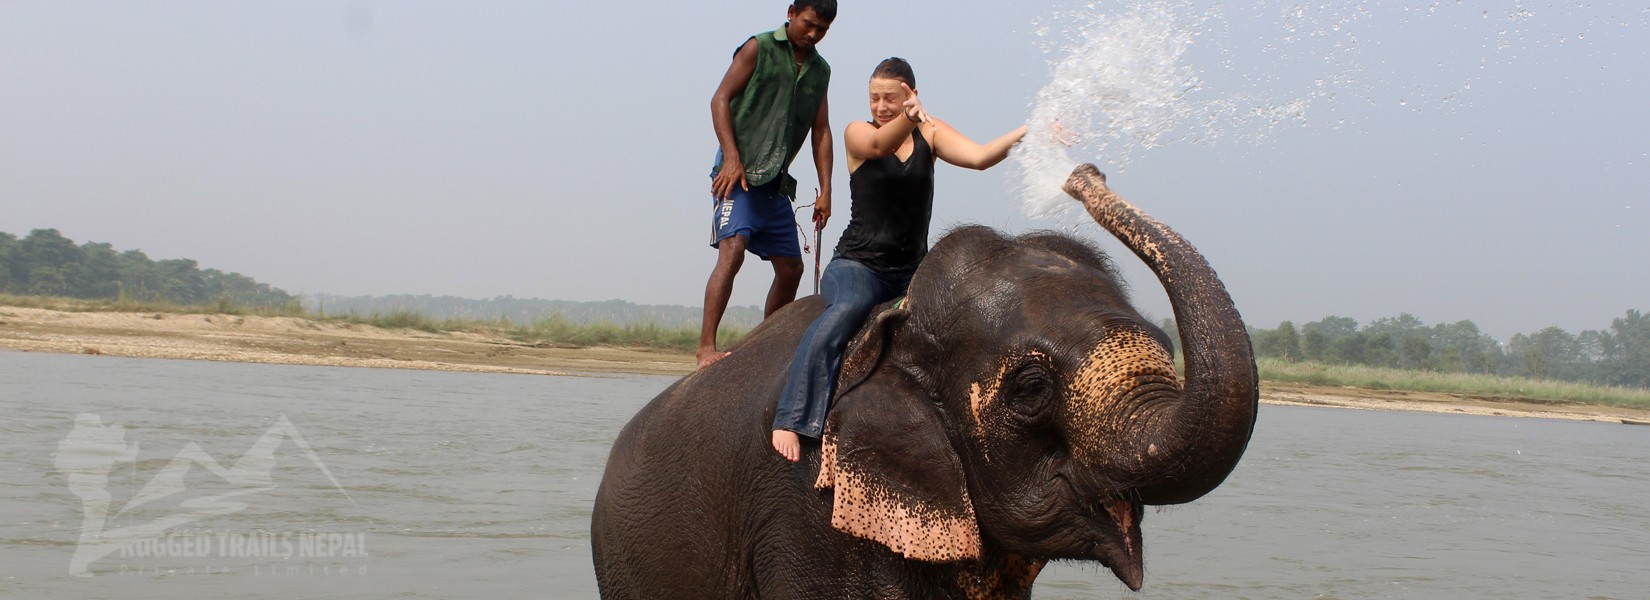 safari tours in nepal